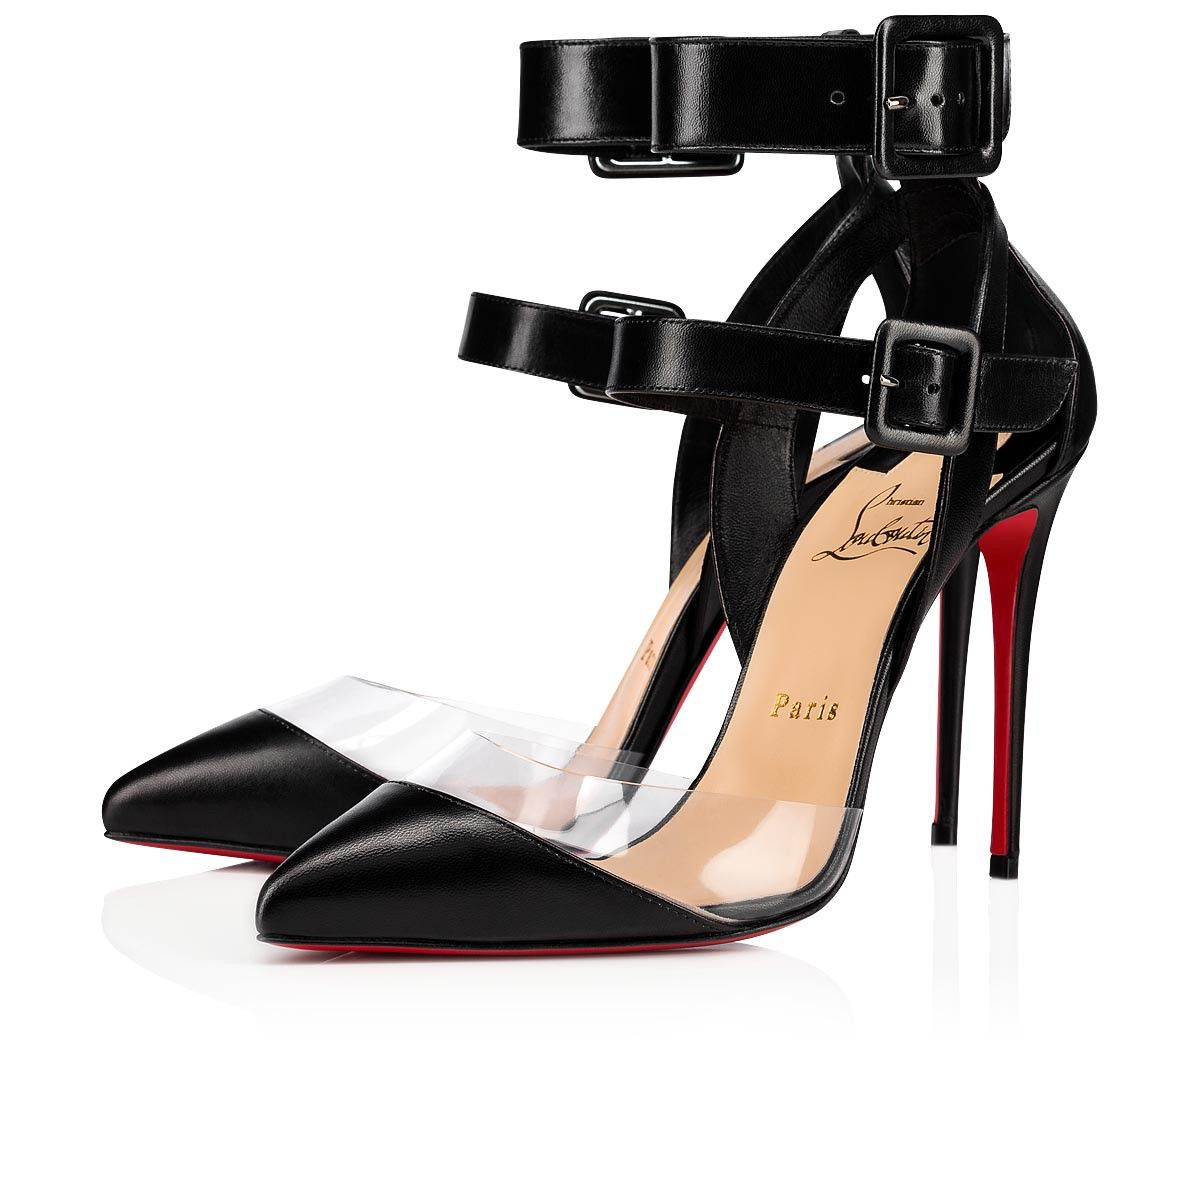 The Multimiss Pumps Have Multi Straps At The Ankle Highlighting The Arch Of The Foot Made Ankle Strap Sandals Heels Pumps Heels Stilettos Strap Sandals Heels